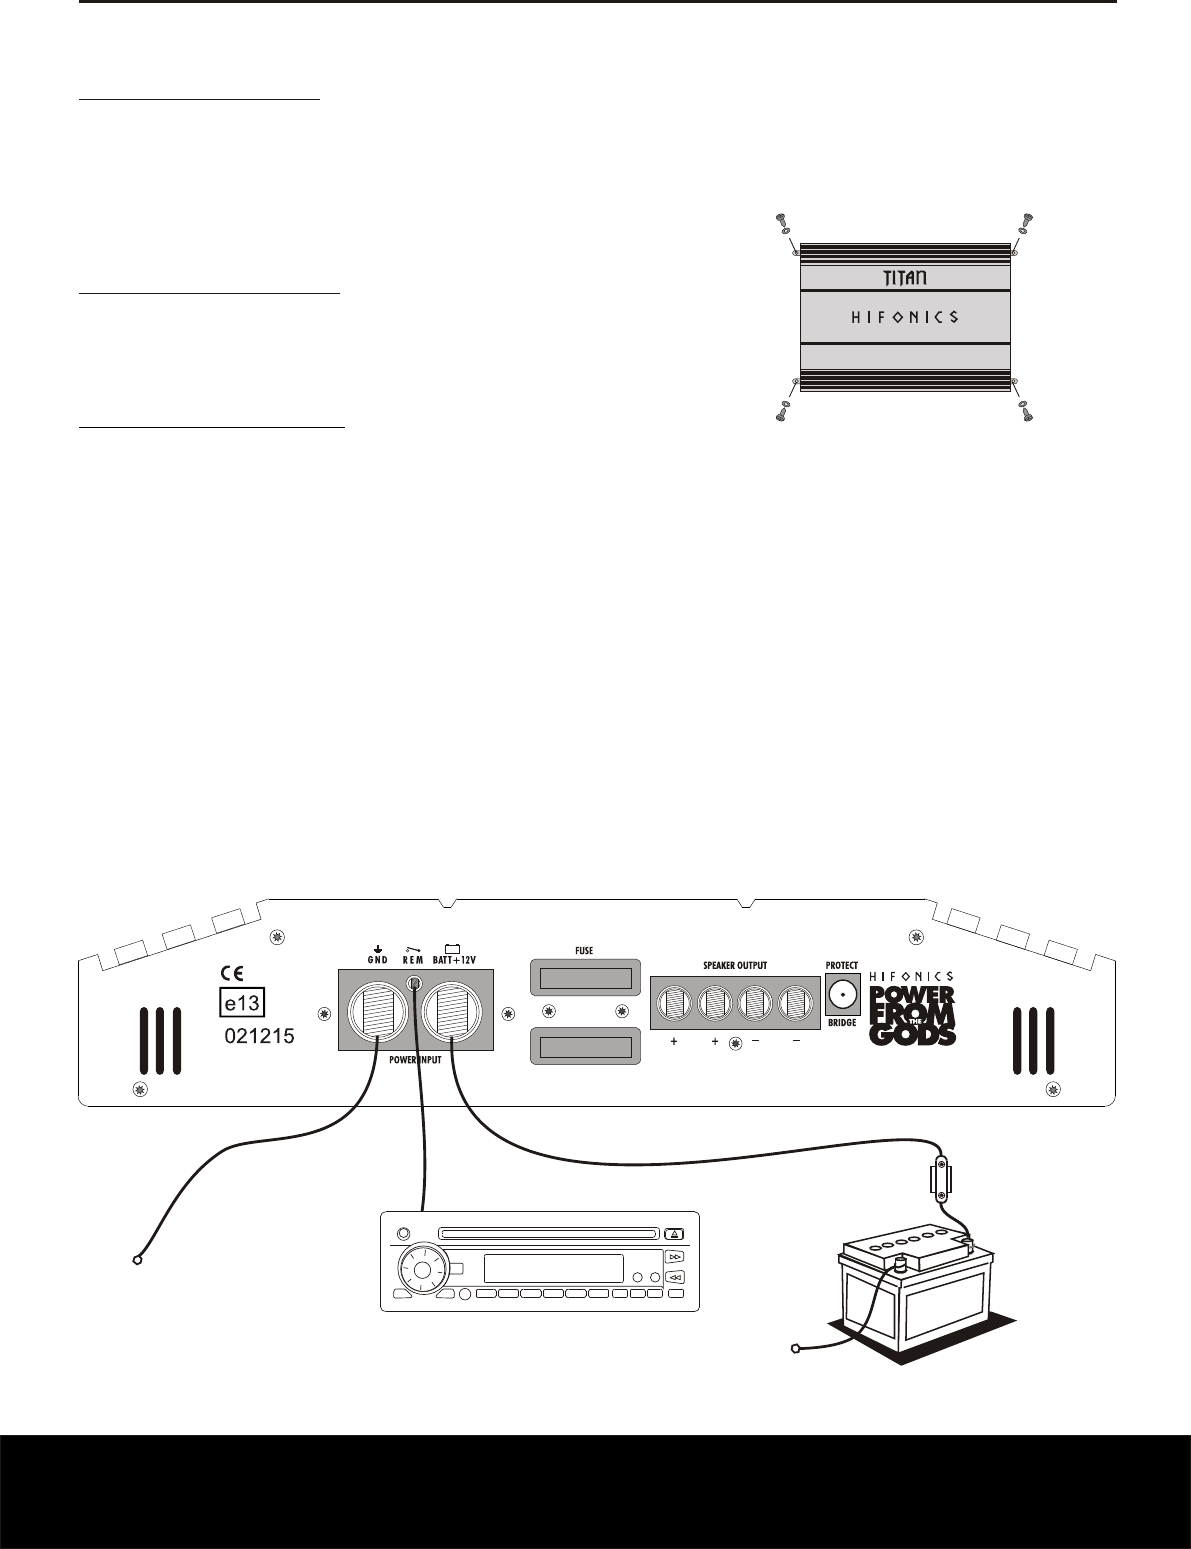 Wiring Diagram For Hifonics Amp